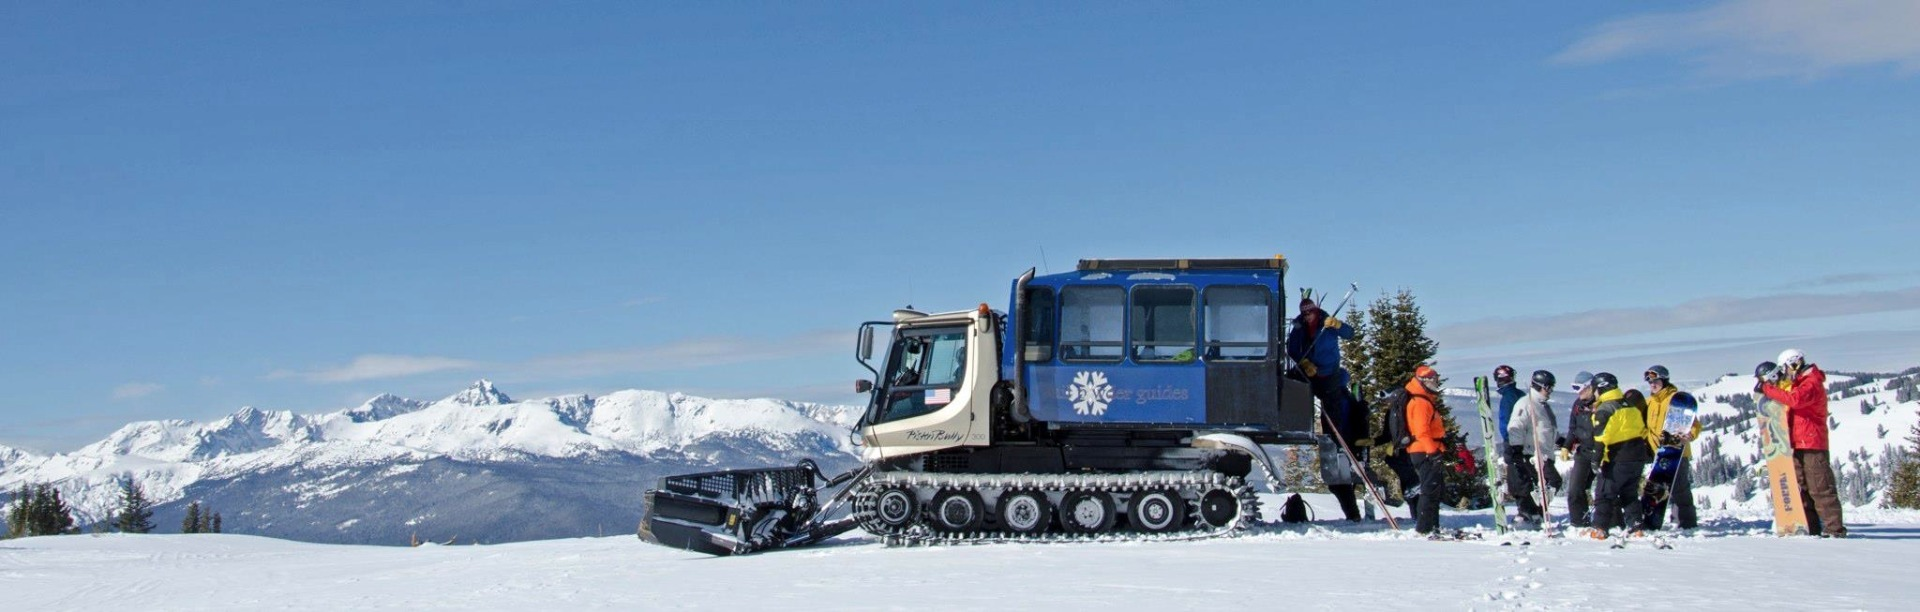 The snowcat with Vail Powder Guides. - ©Vail Powder Guides